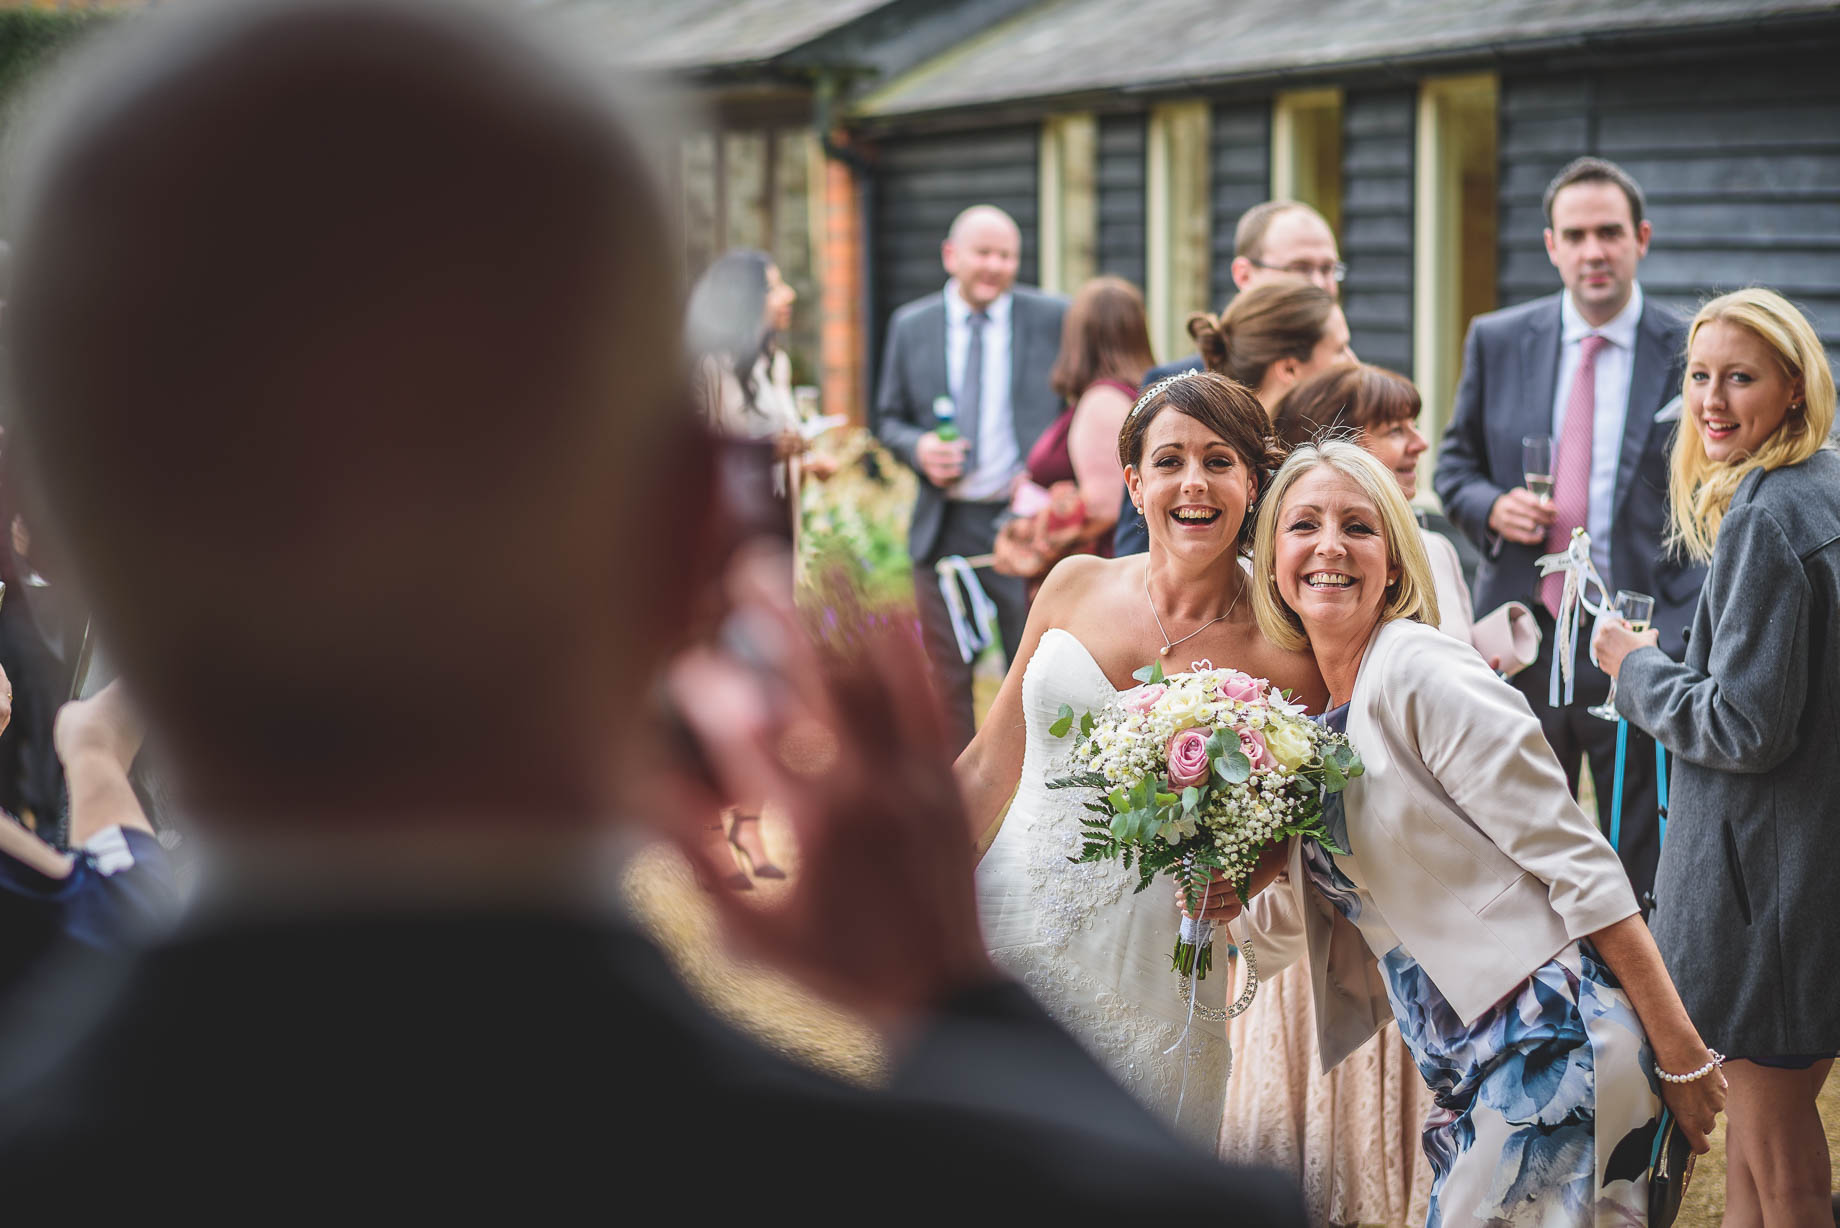 Bury Court Barn wedding photography - Guy Collier Photography - Karen and John (80 of 166)